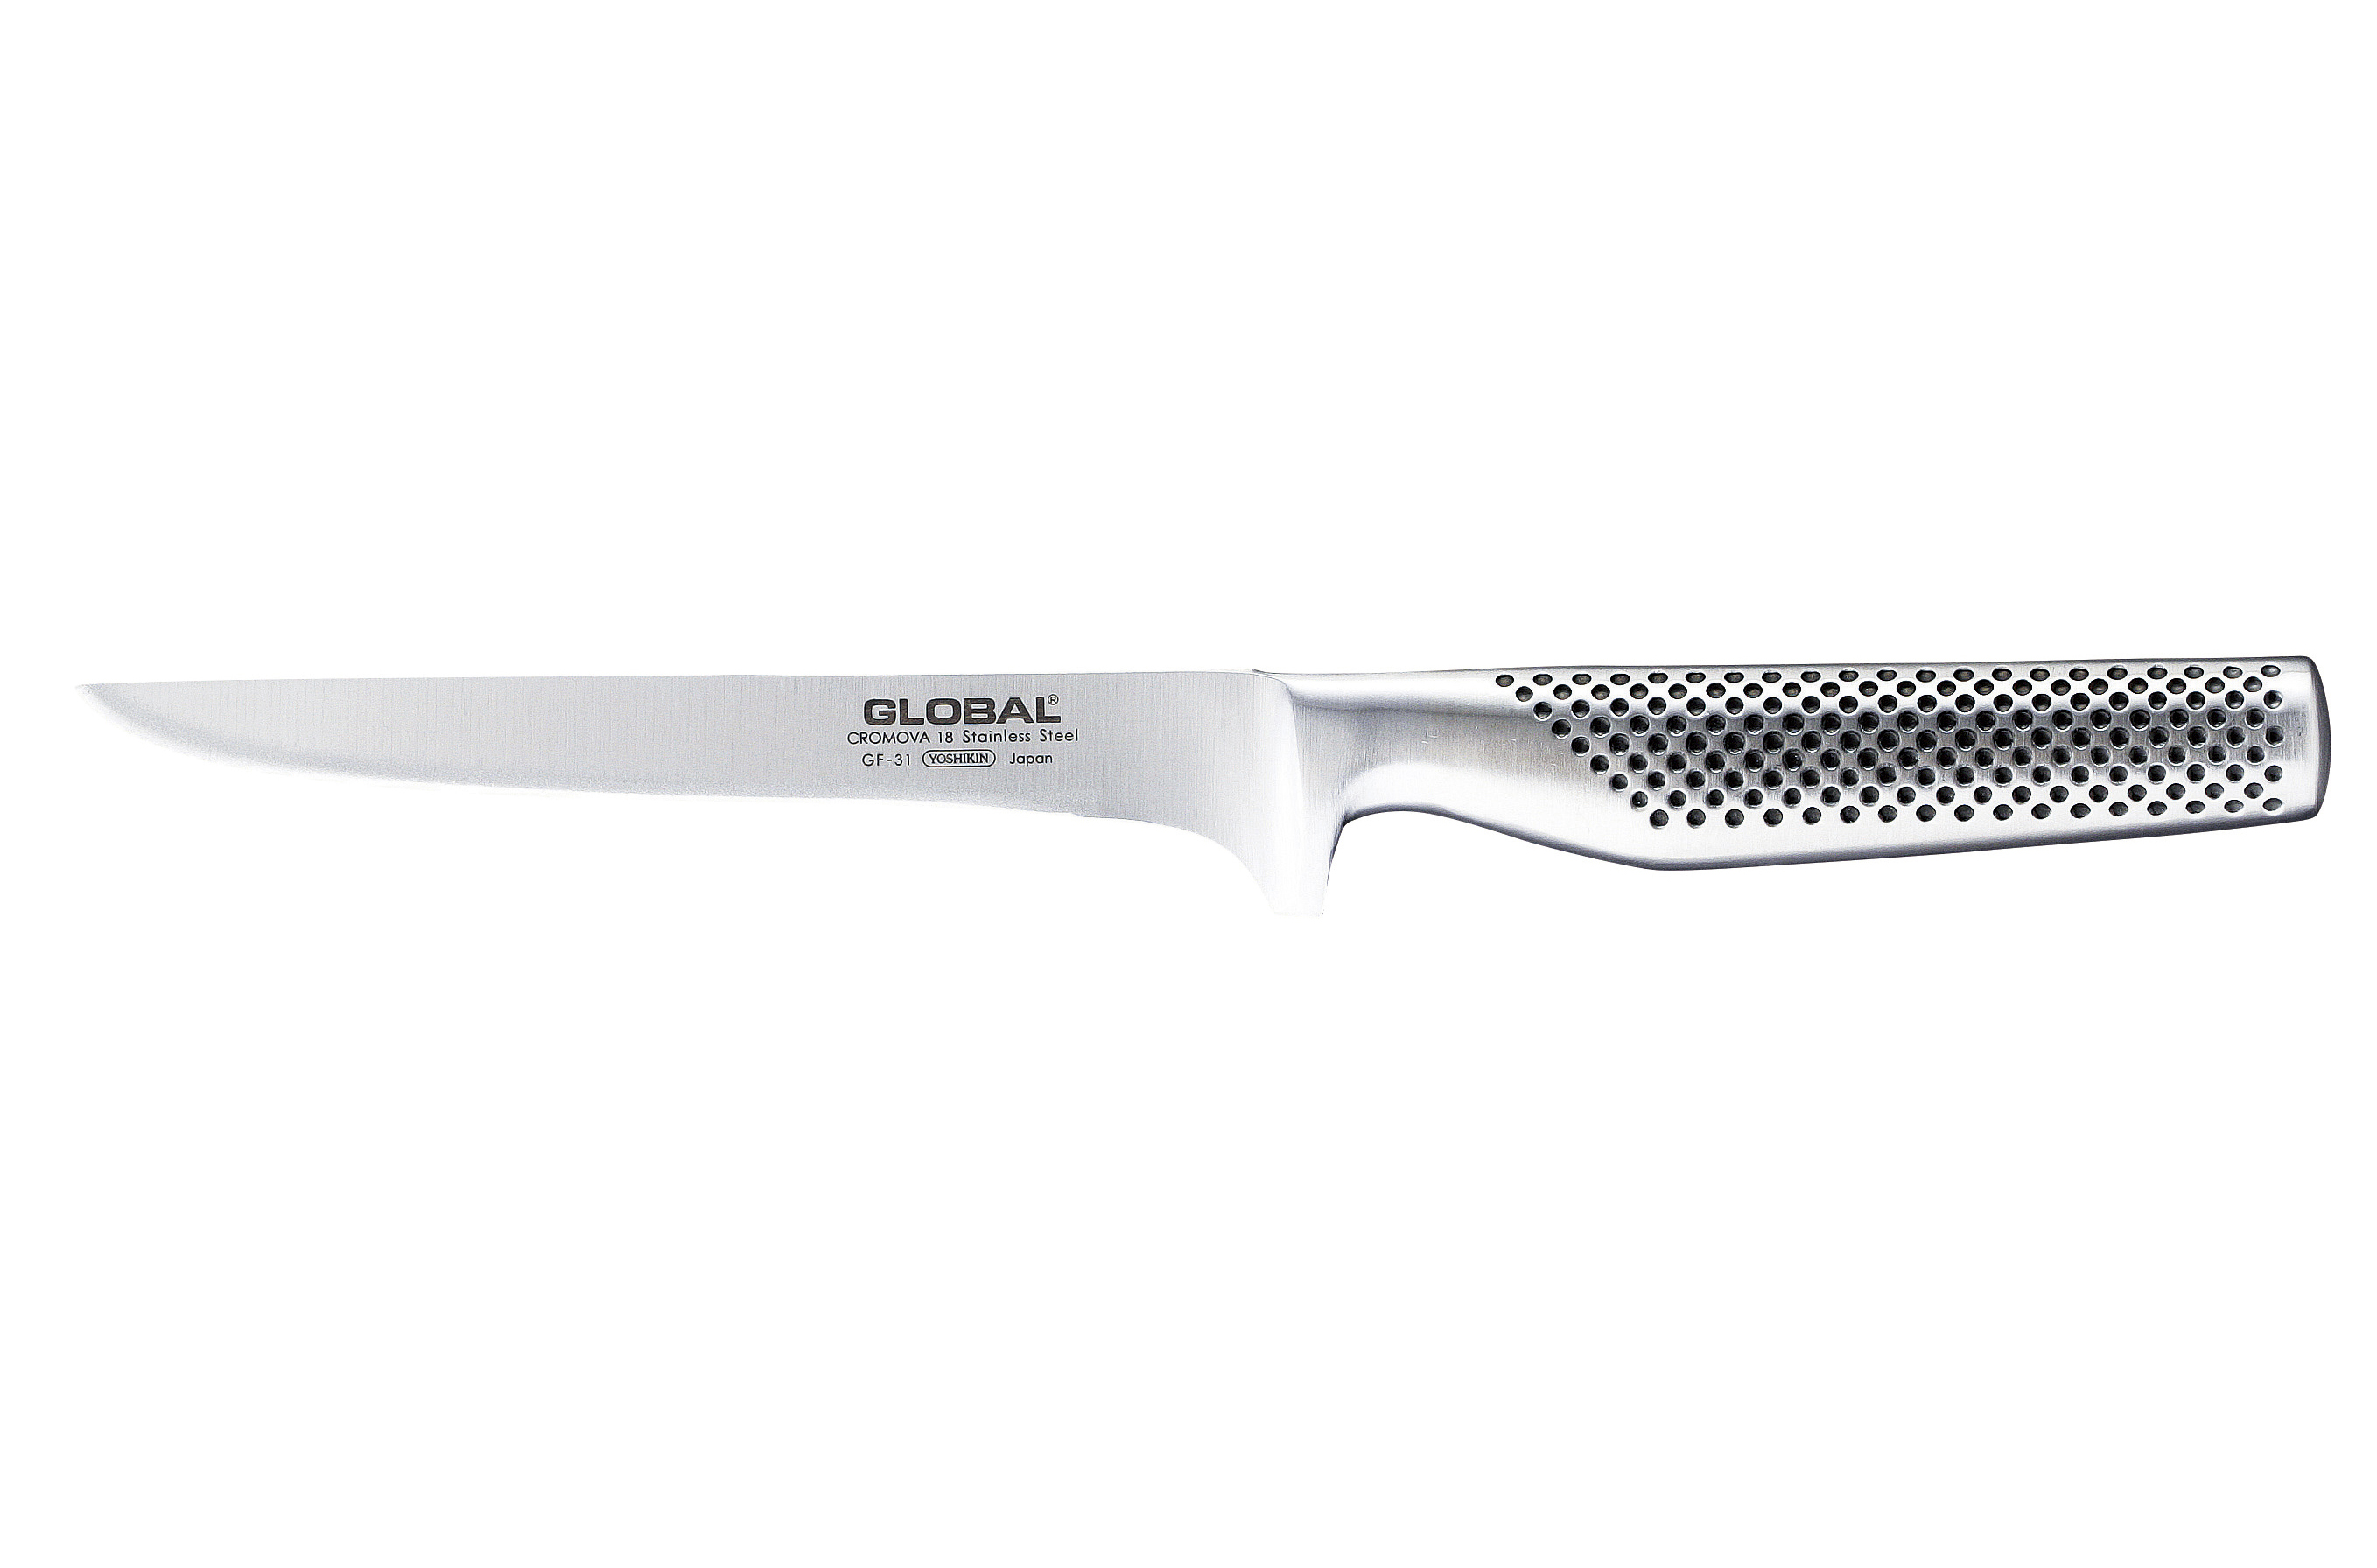 Global GF-31 Boning Knife 16cm